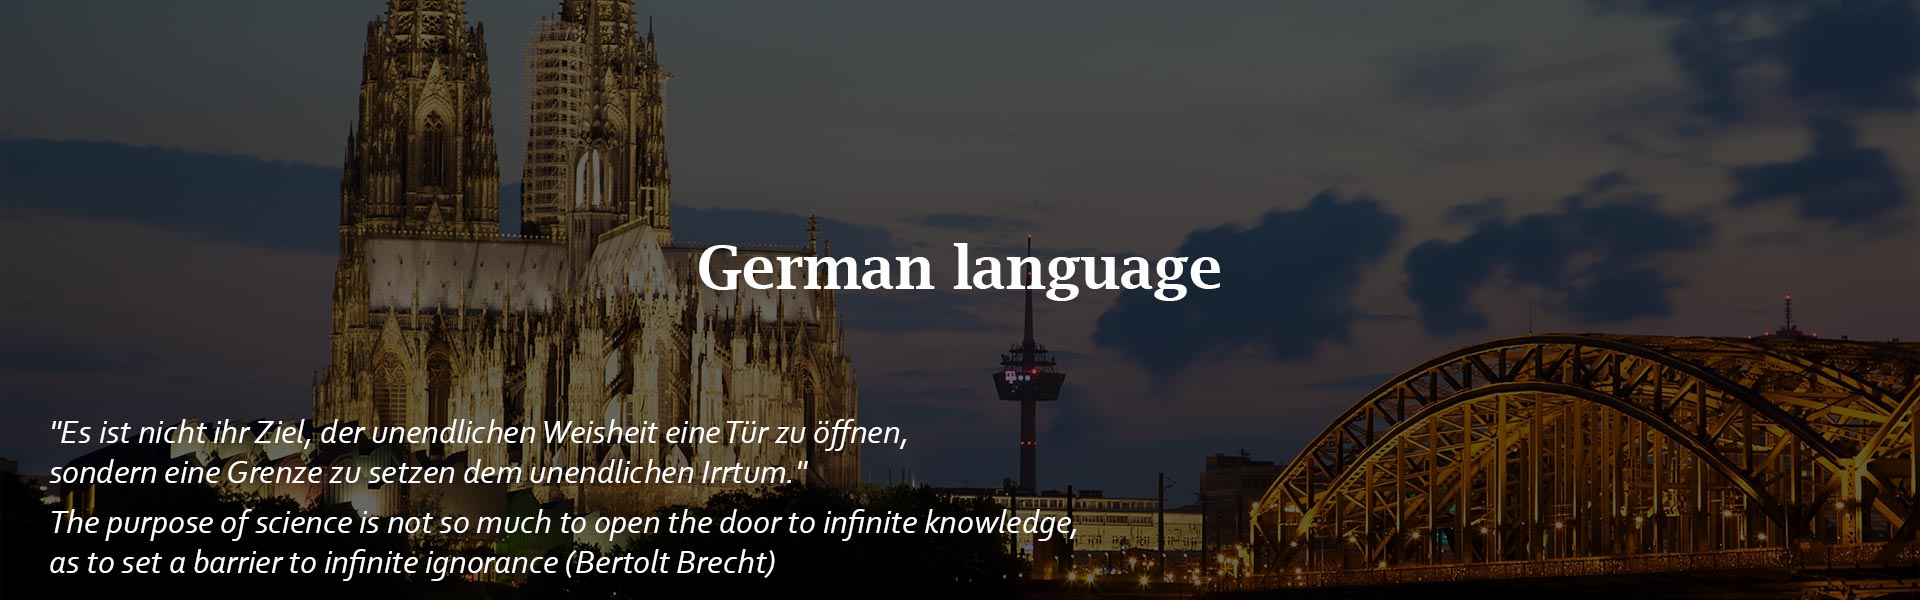 German-language-alif